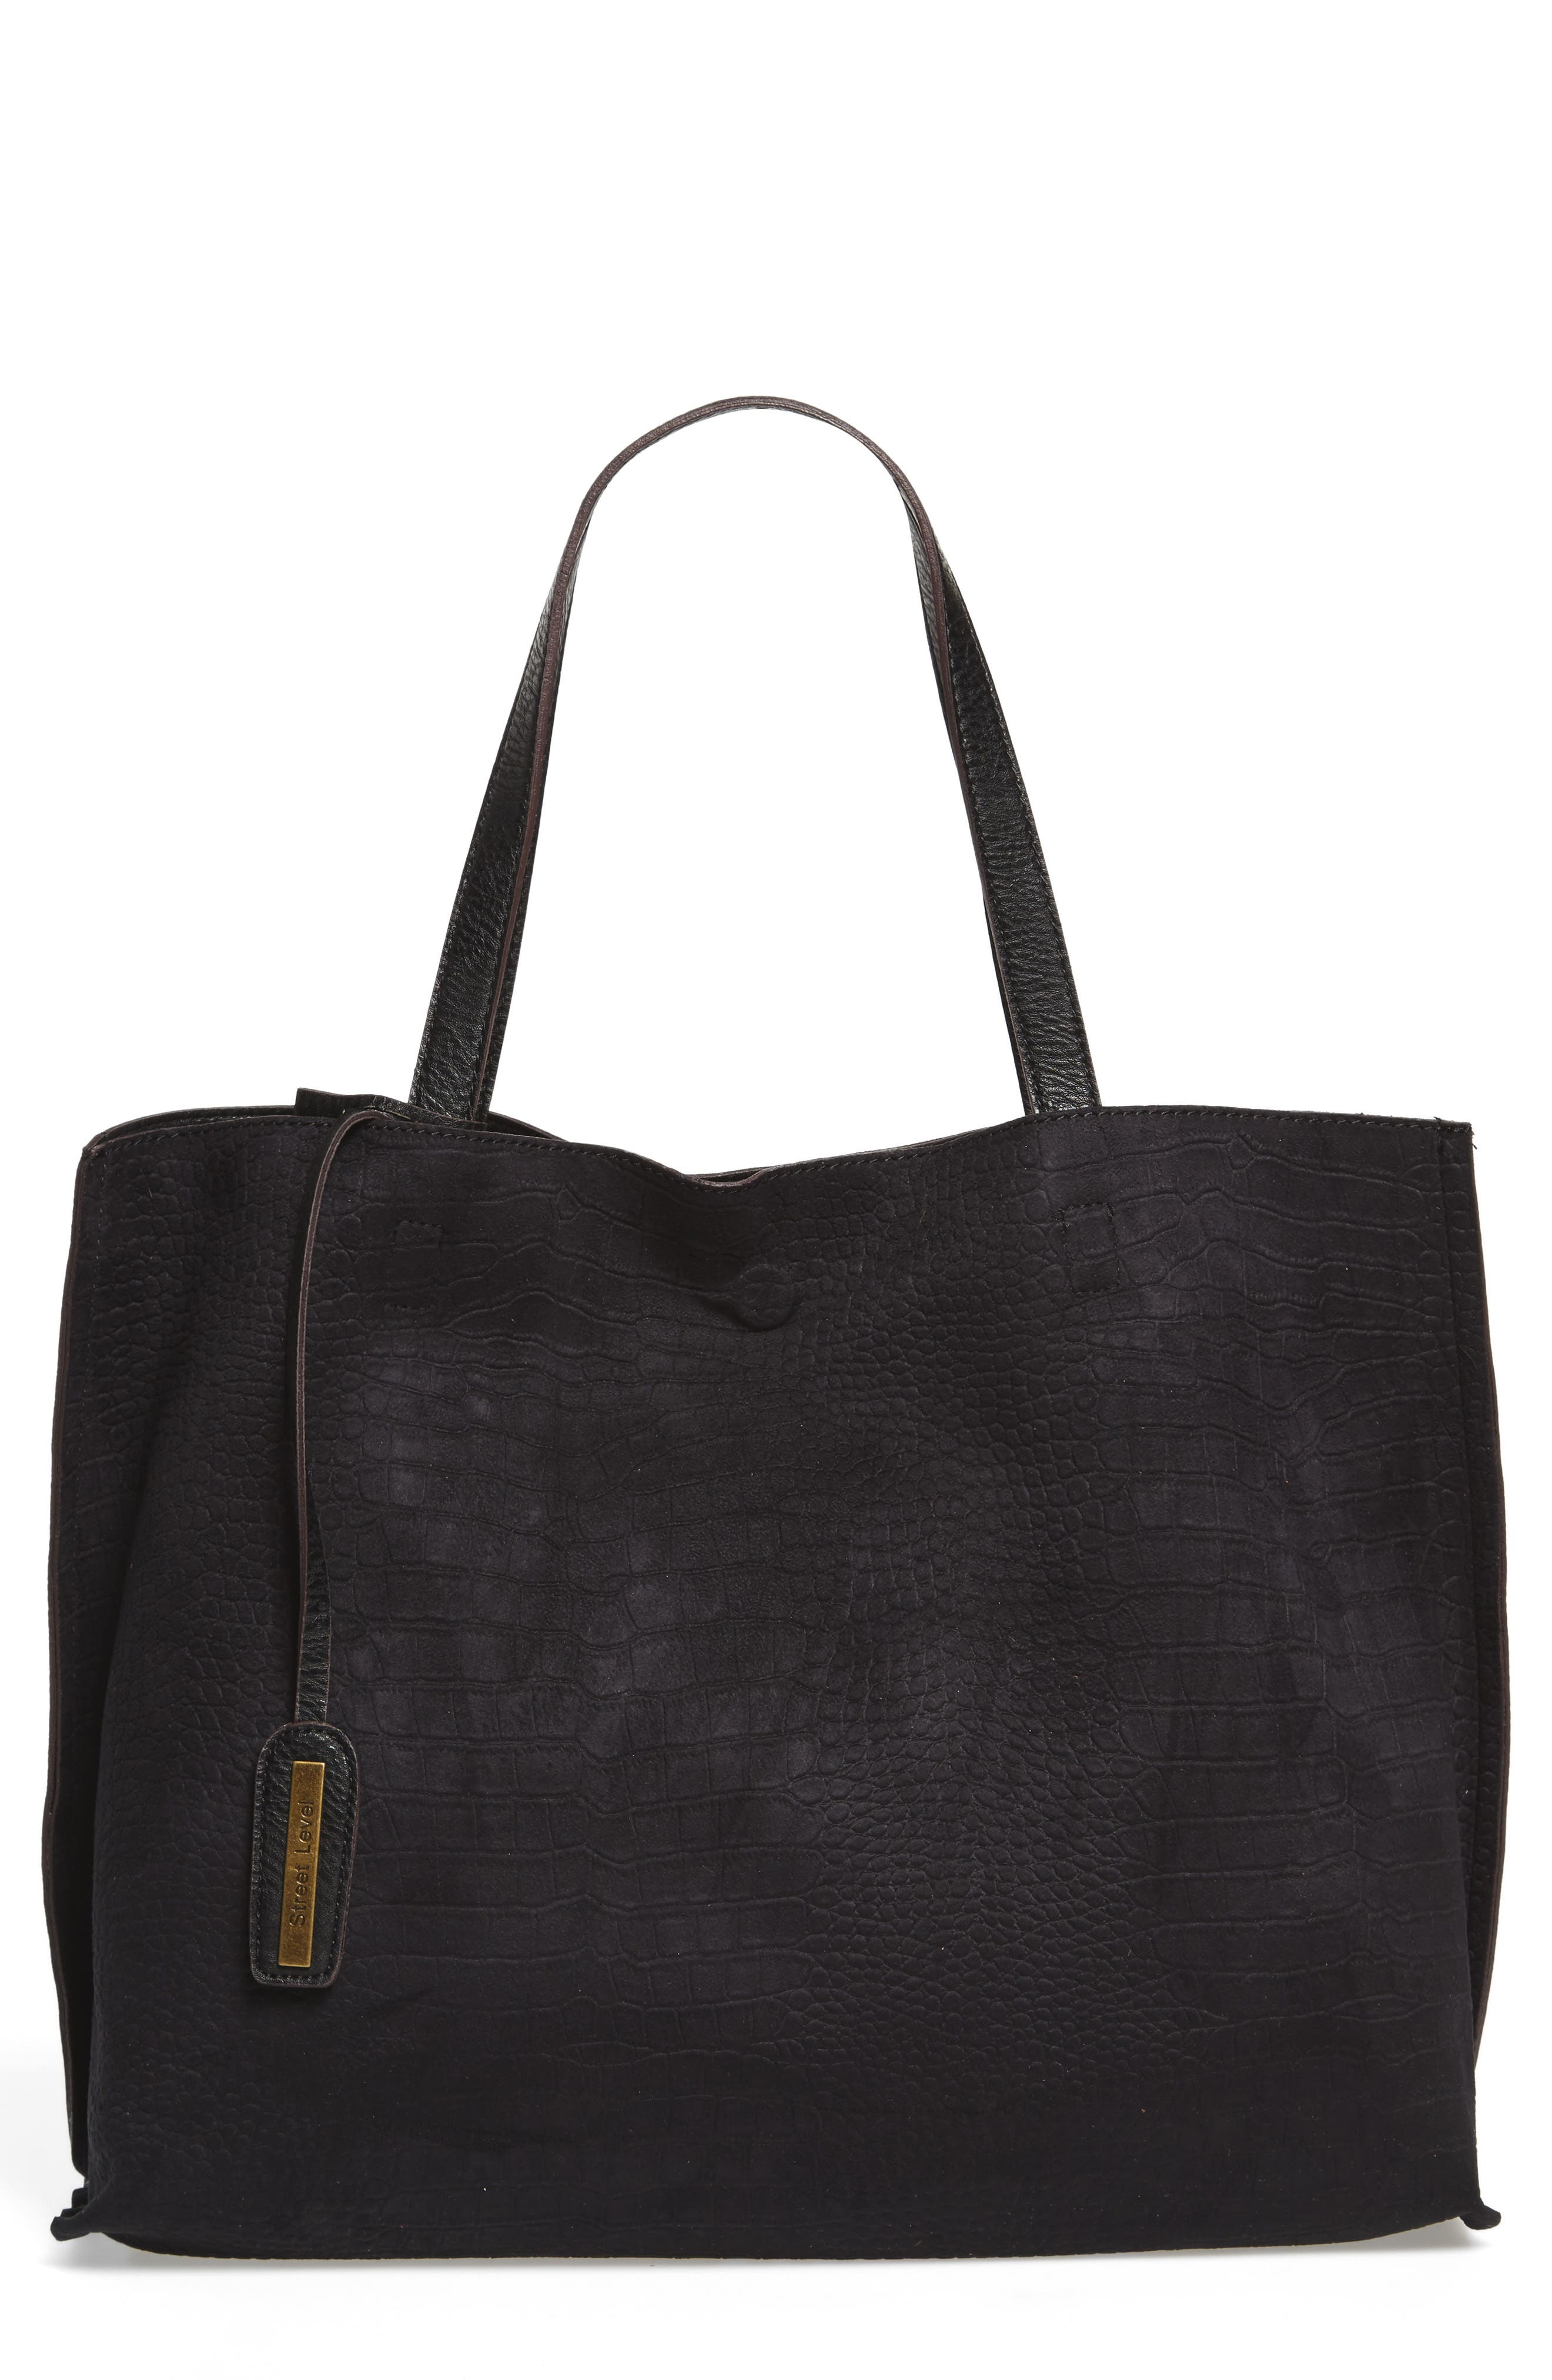 Main Image - Street Level Reversible Textured Faux Leather Tote